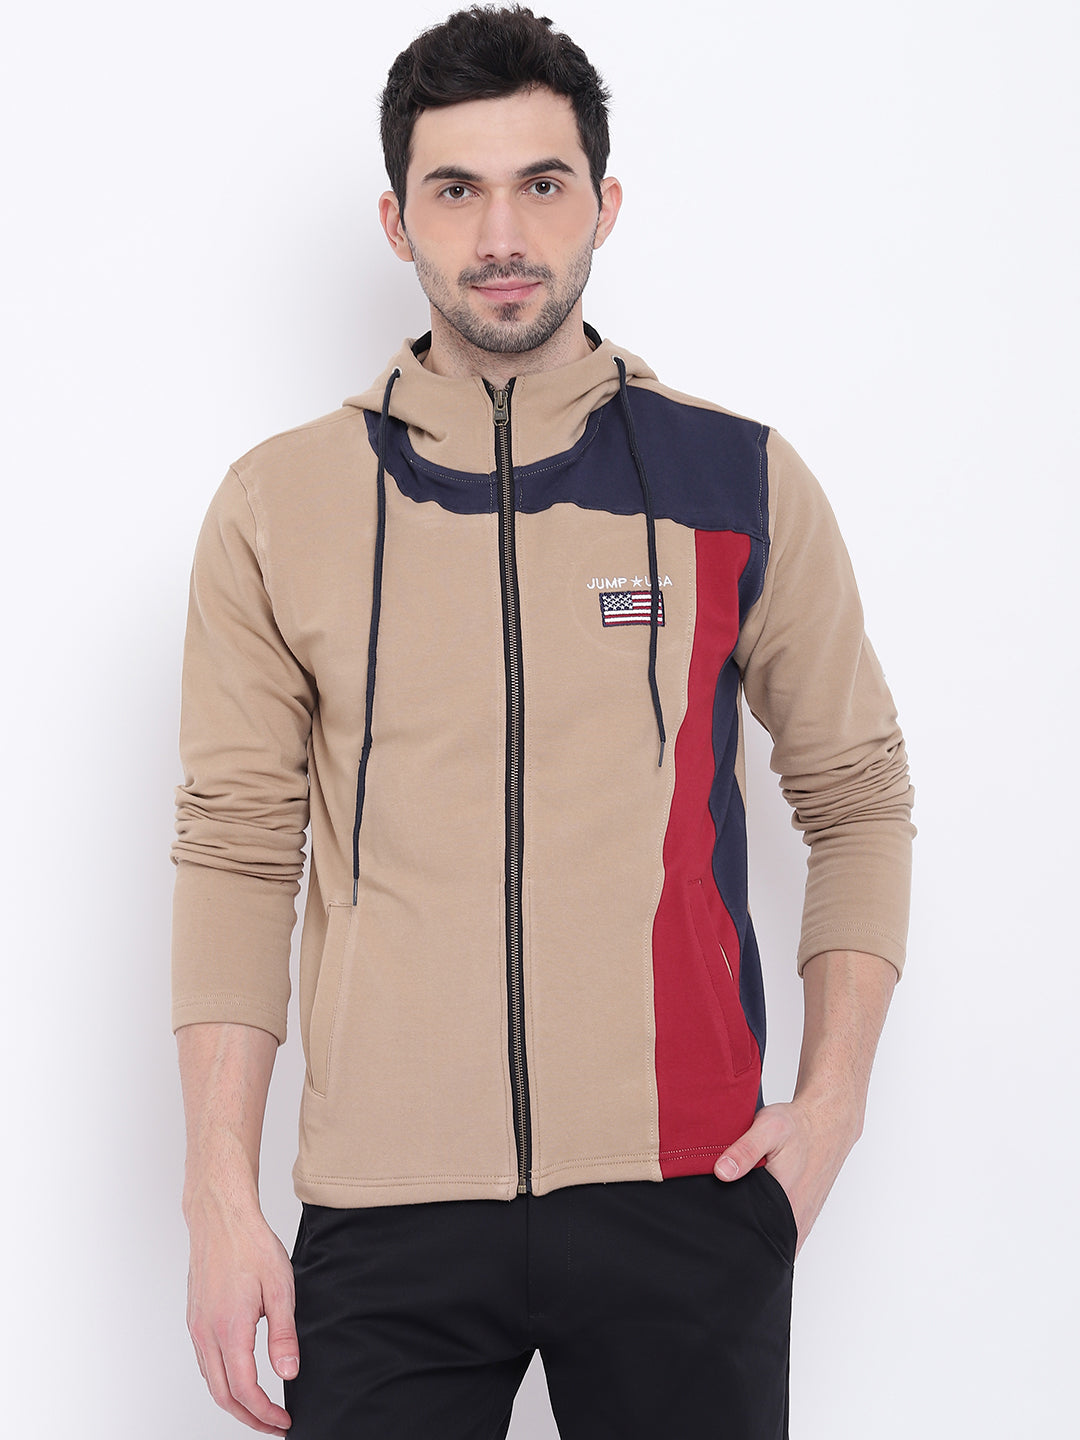 Men Casual Colourblocked Beige Sweatshirt - JUMP USA